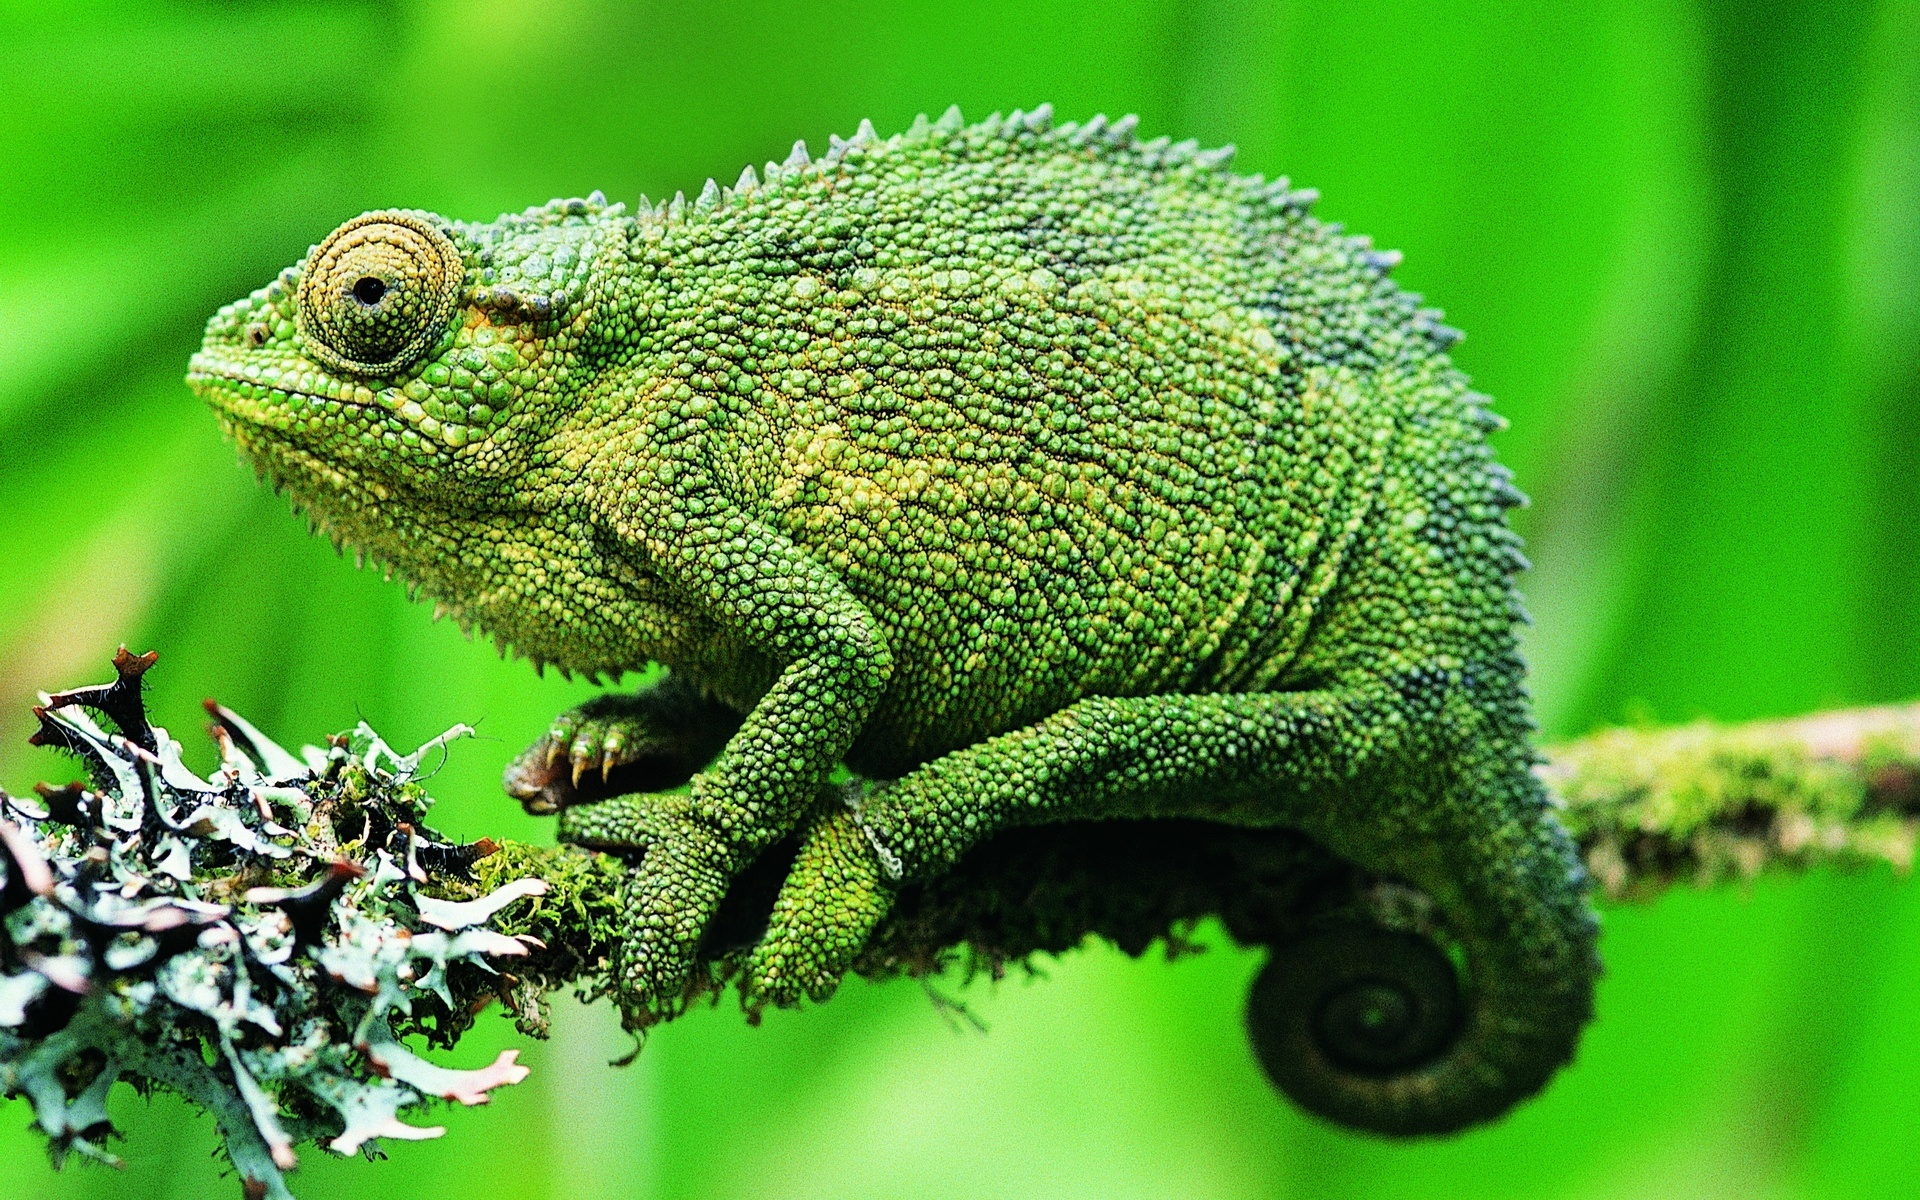 22 reptile hd wallpapers - photo #15